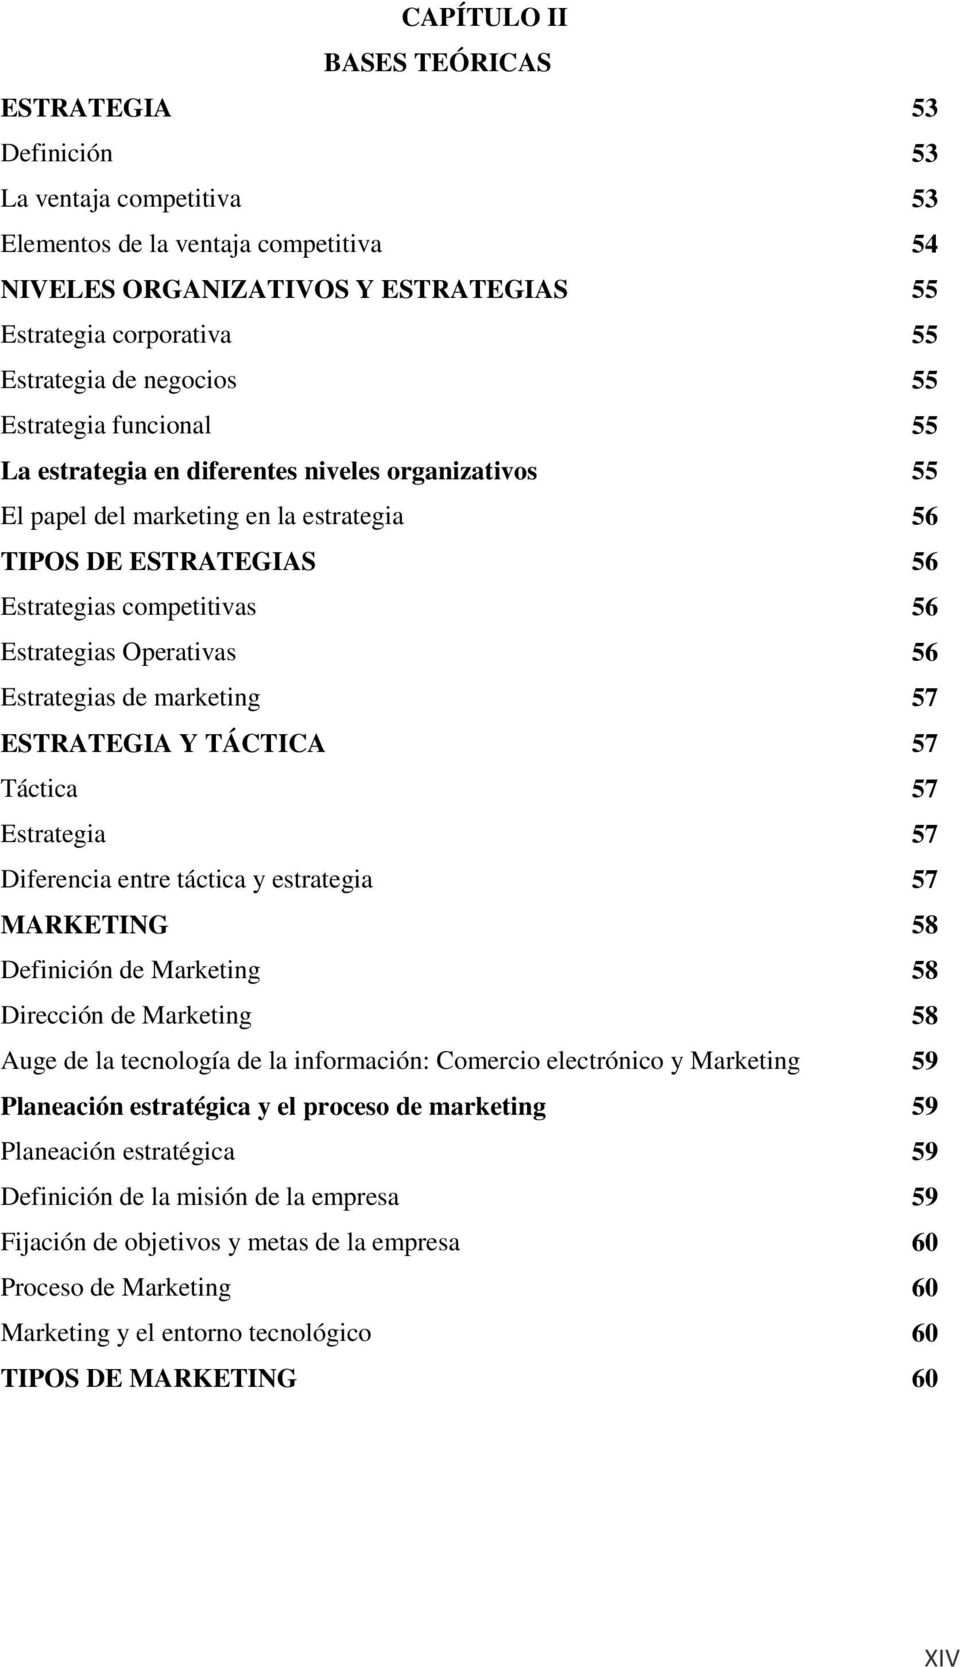 Operativas 56 Estrategias de marketing 57 ESTRATEGIA Y TÁCTICA 57 Táctica 57 Estrategia 57 Diferencia entre táctica y estrategia 57 MARKETING 58 Definición de Marketing 58 Dirección de Marketing 58